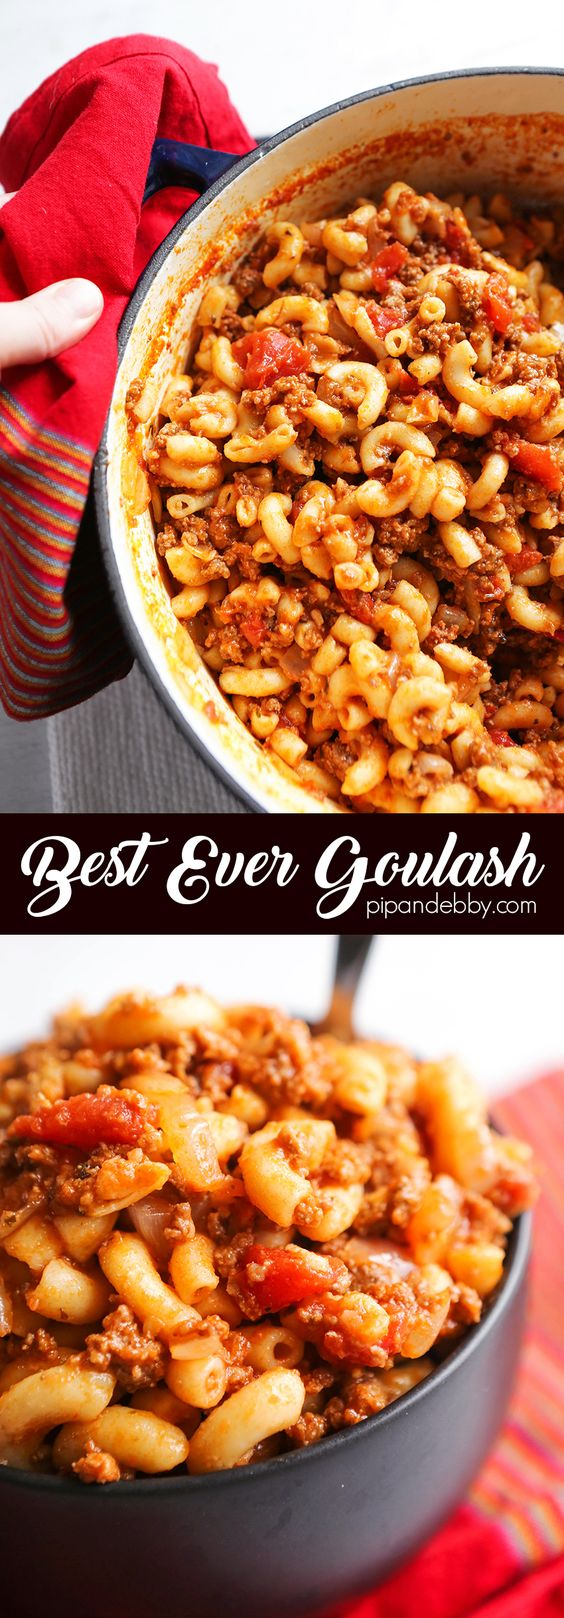 American Goulash Made In One Pot Pip And Ebby Recipe Recipes Food Goulash Recipes